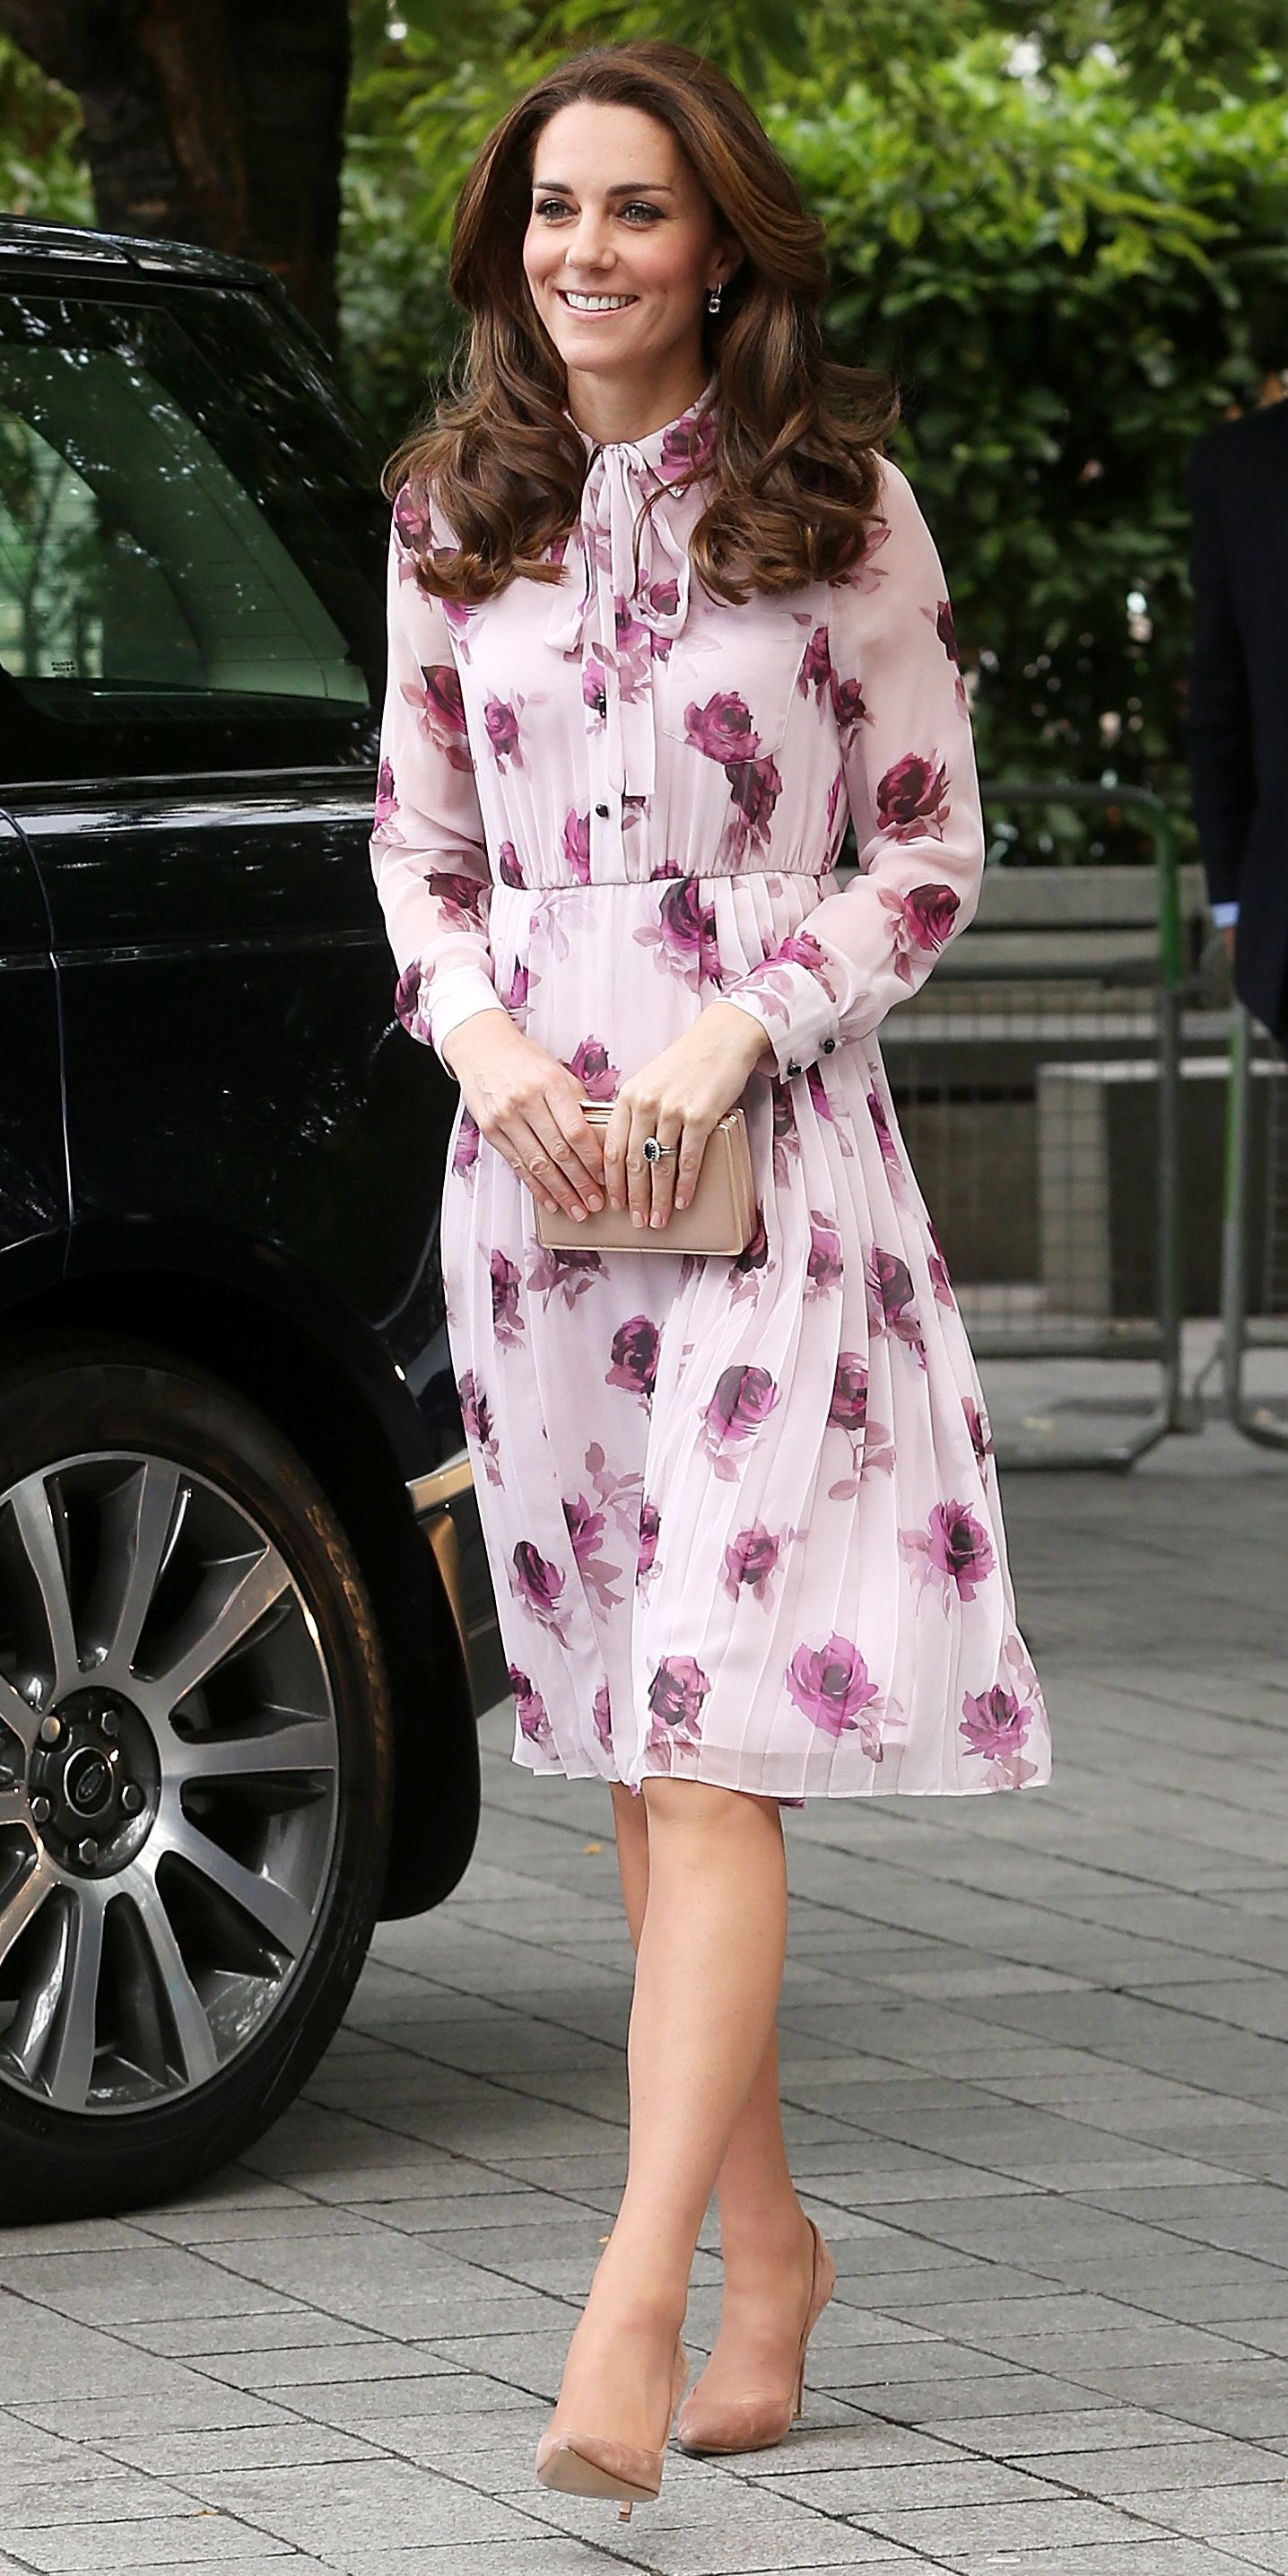 55caf82a62 Kate Middleton Is Fall Floral Perfection in a Pastel Pink Tie-Neck ...